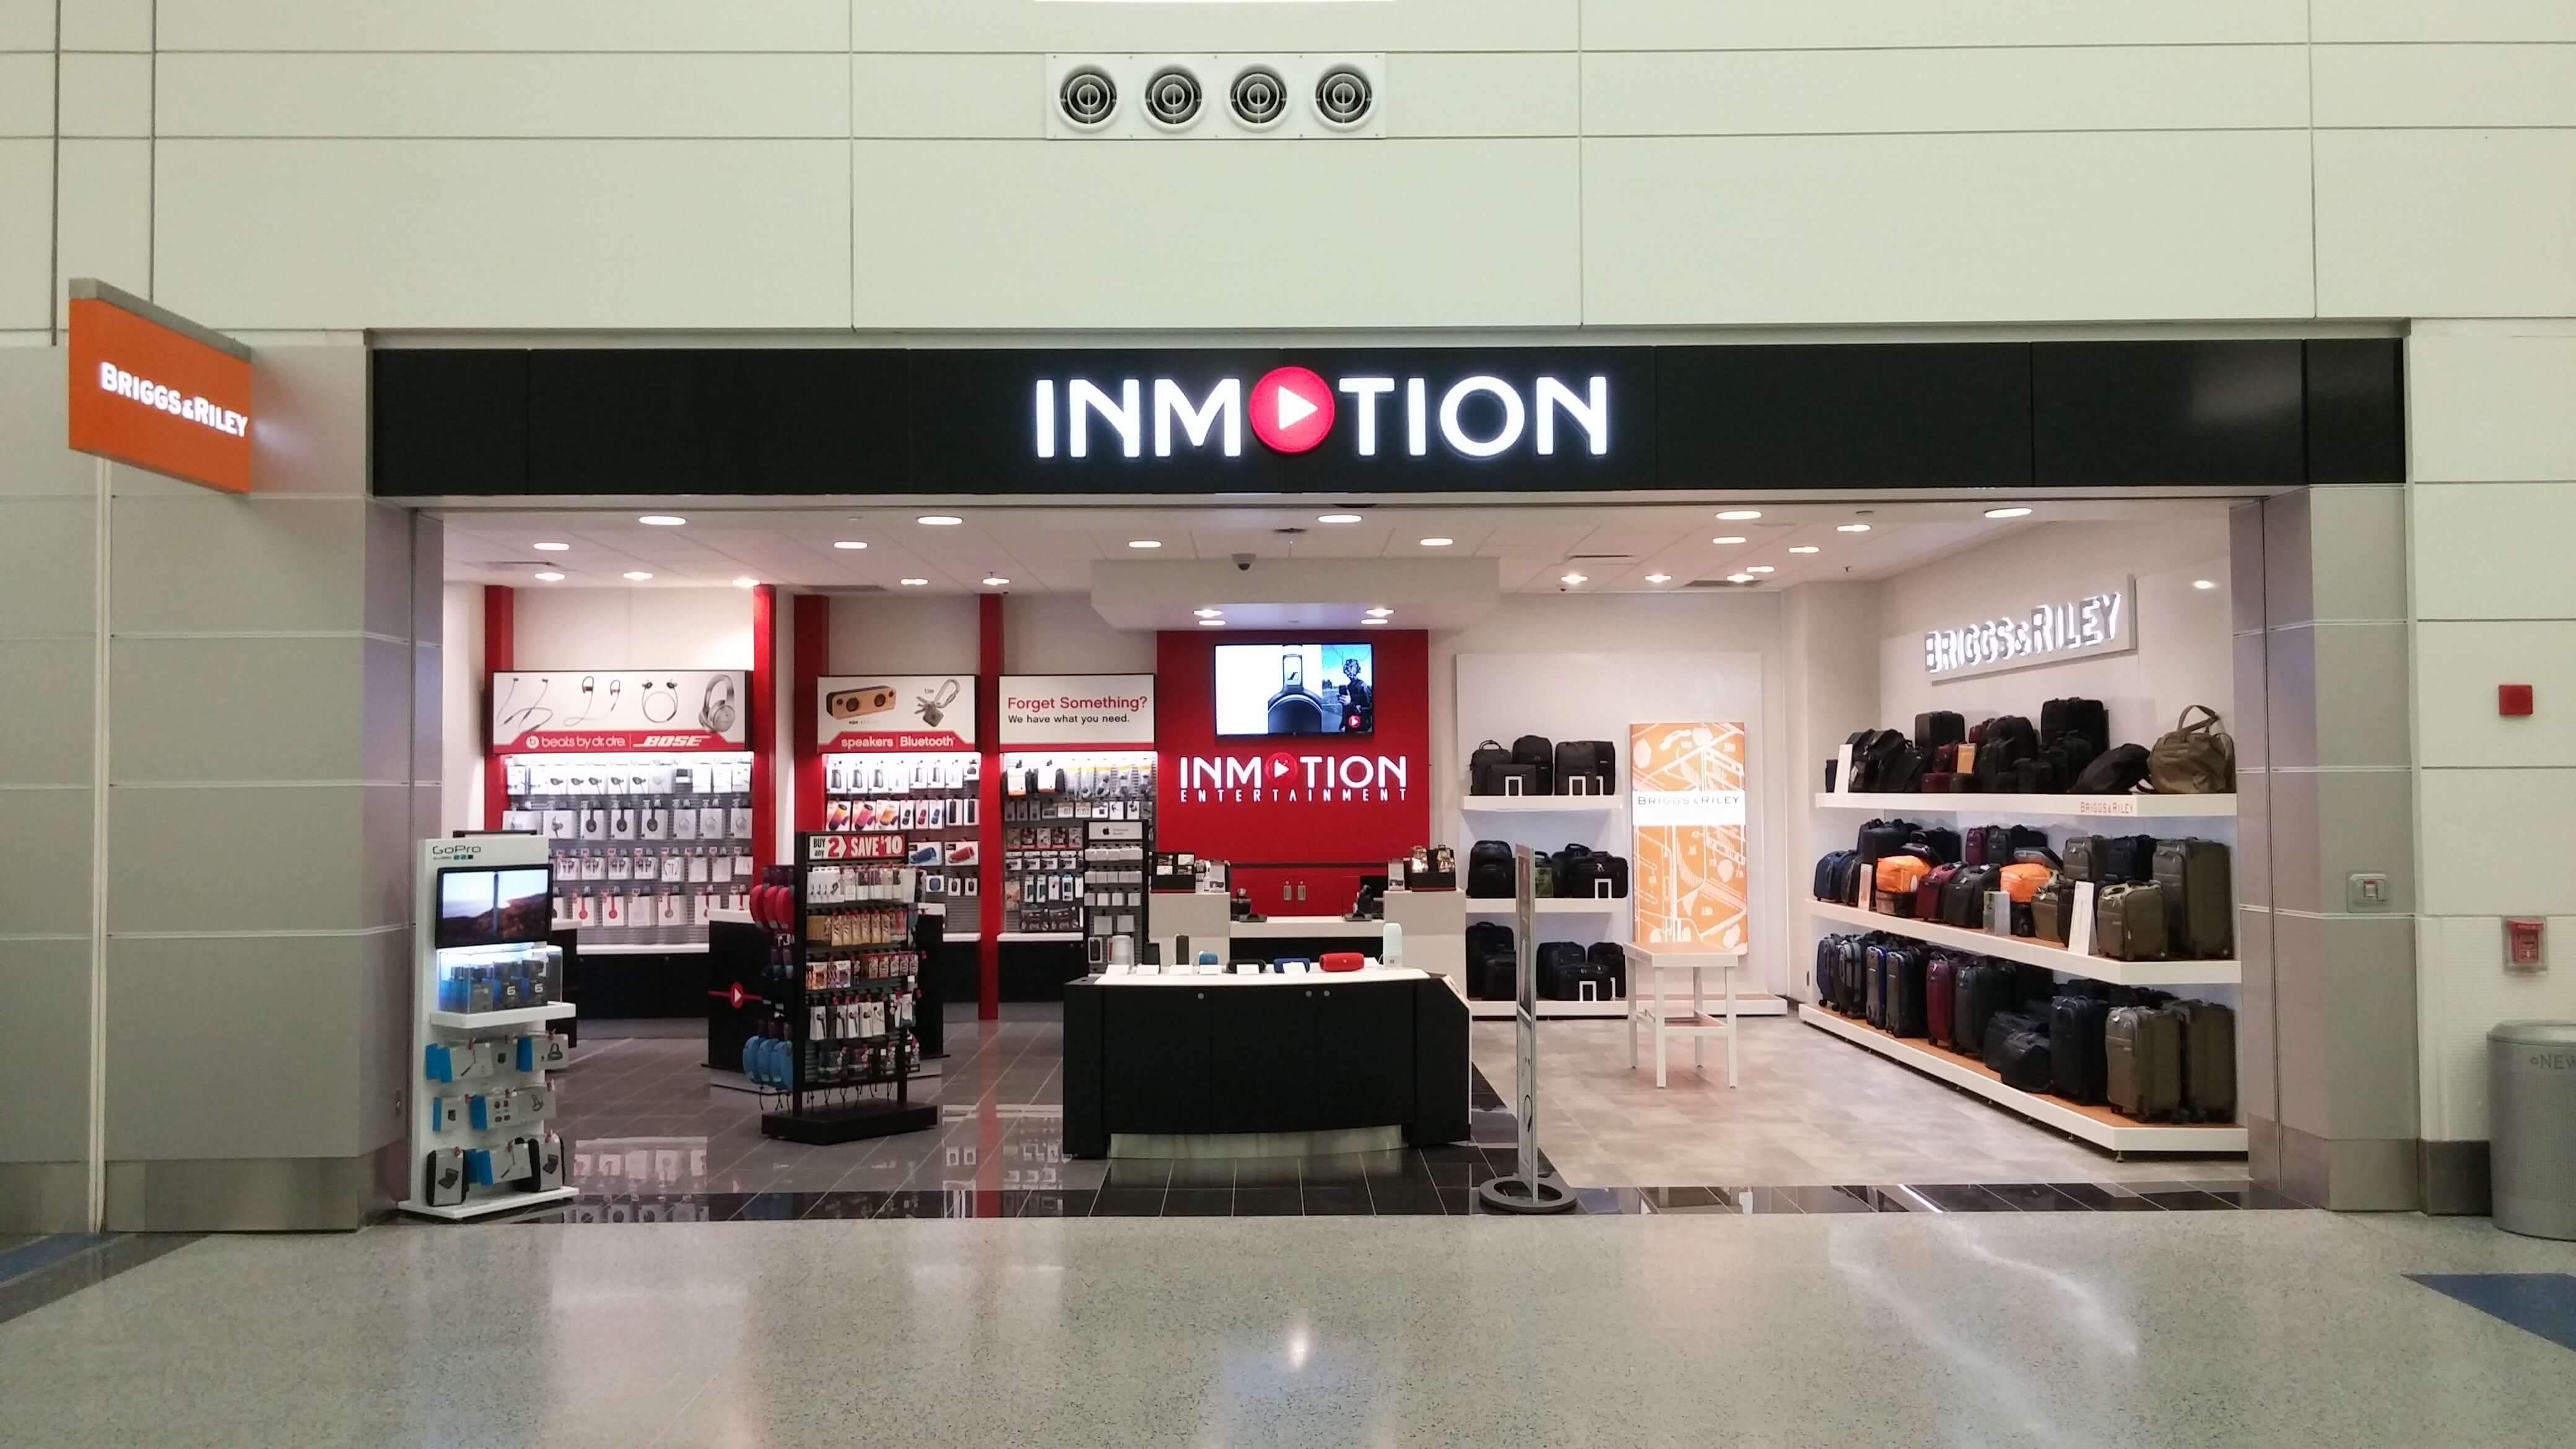 InMotion located in North Terminal at Detroit Metropolitan